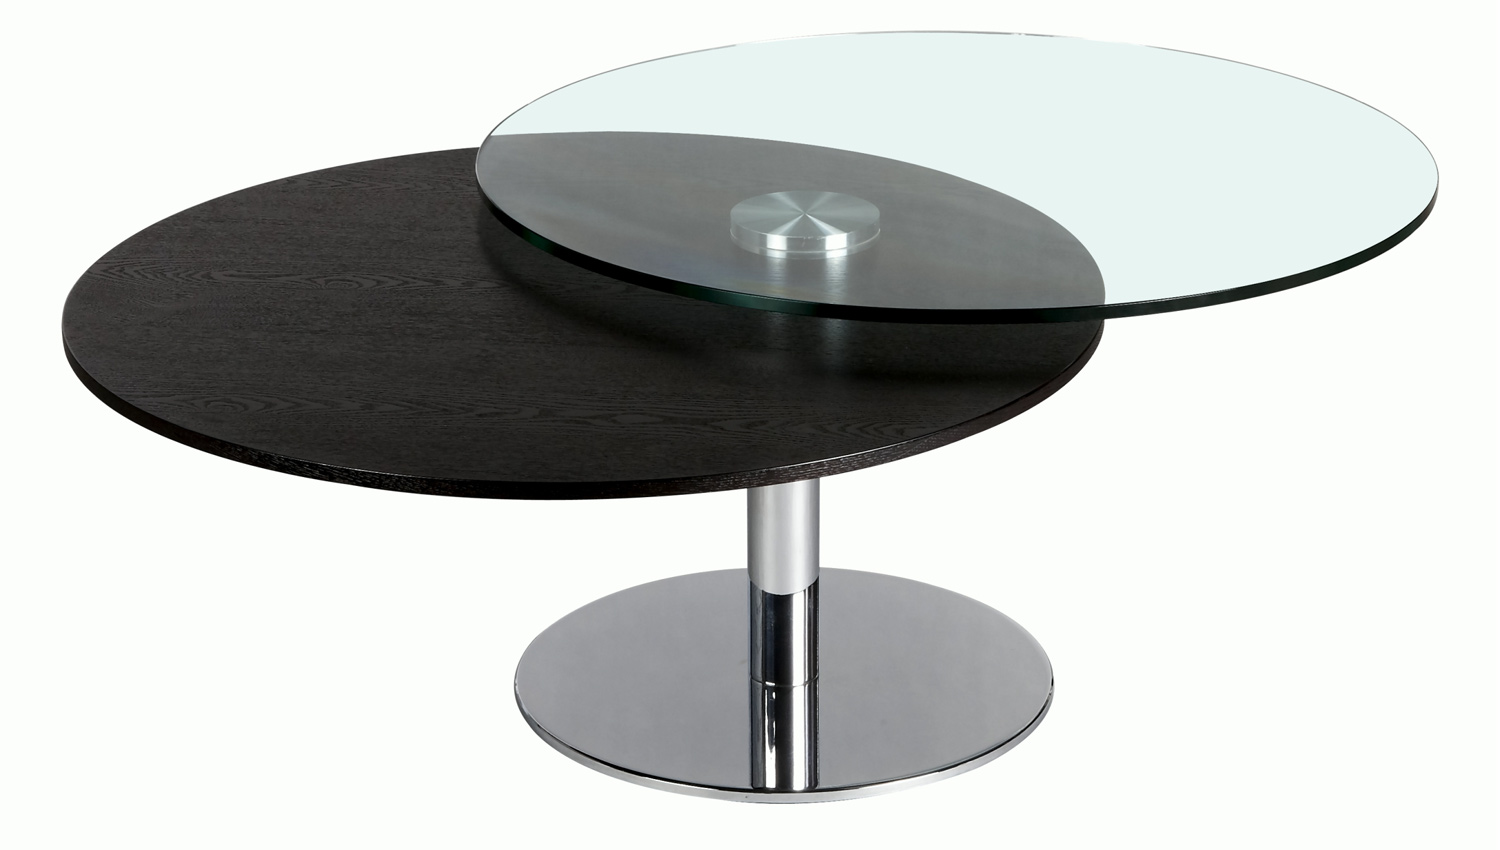 Chintaly Imports 8176 Motion Cocktail Table - Clear Glass/Ash Veneer/Chrome